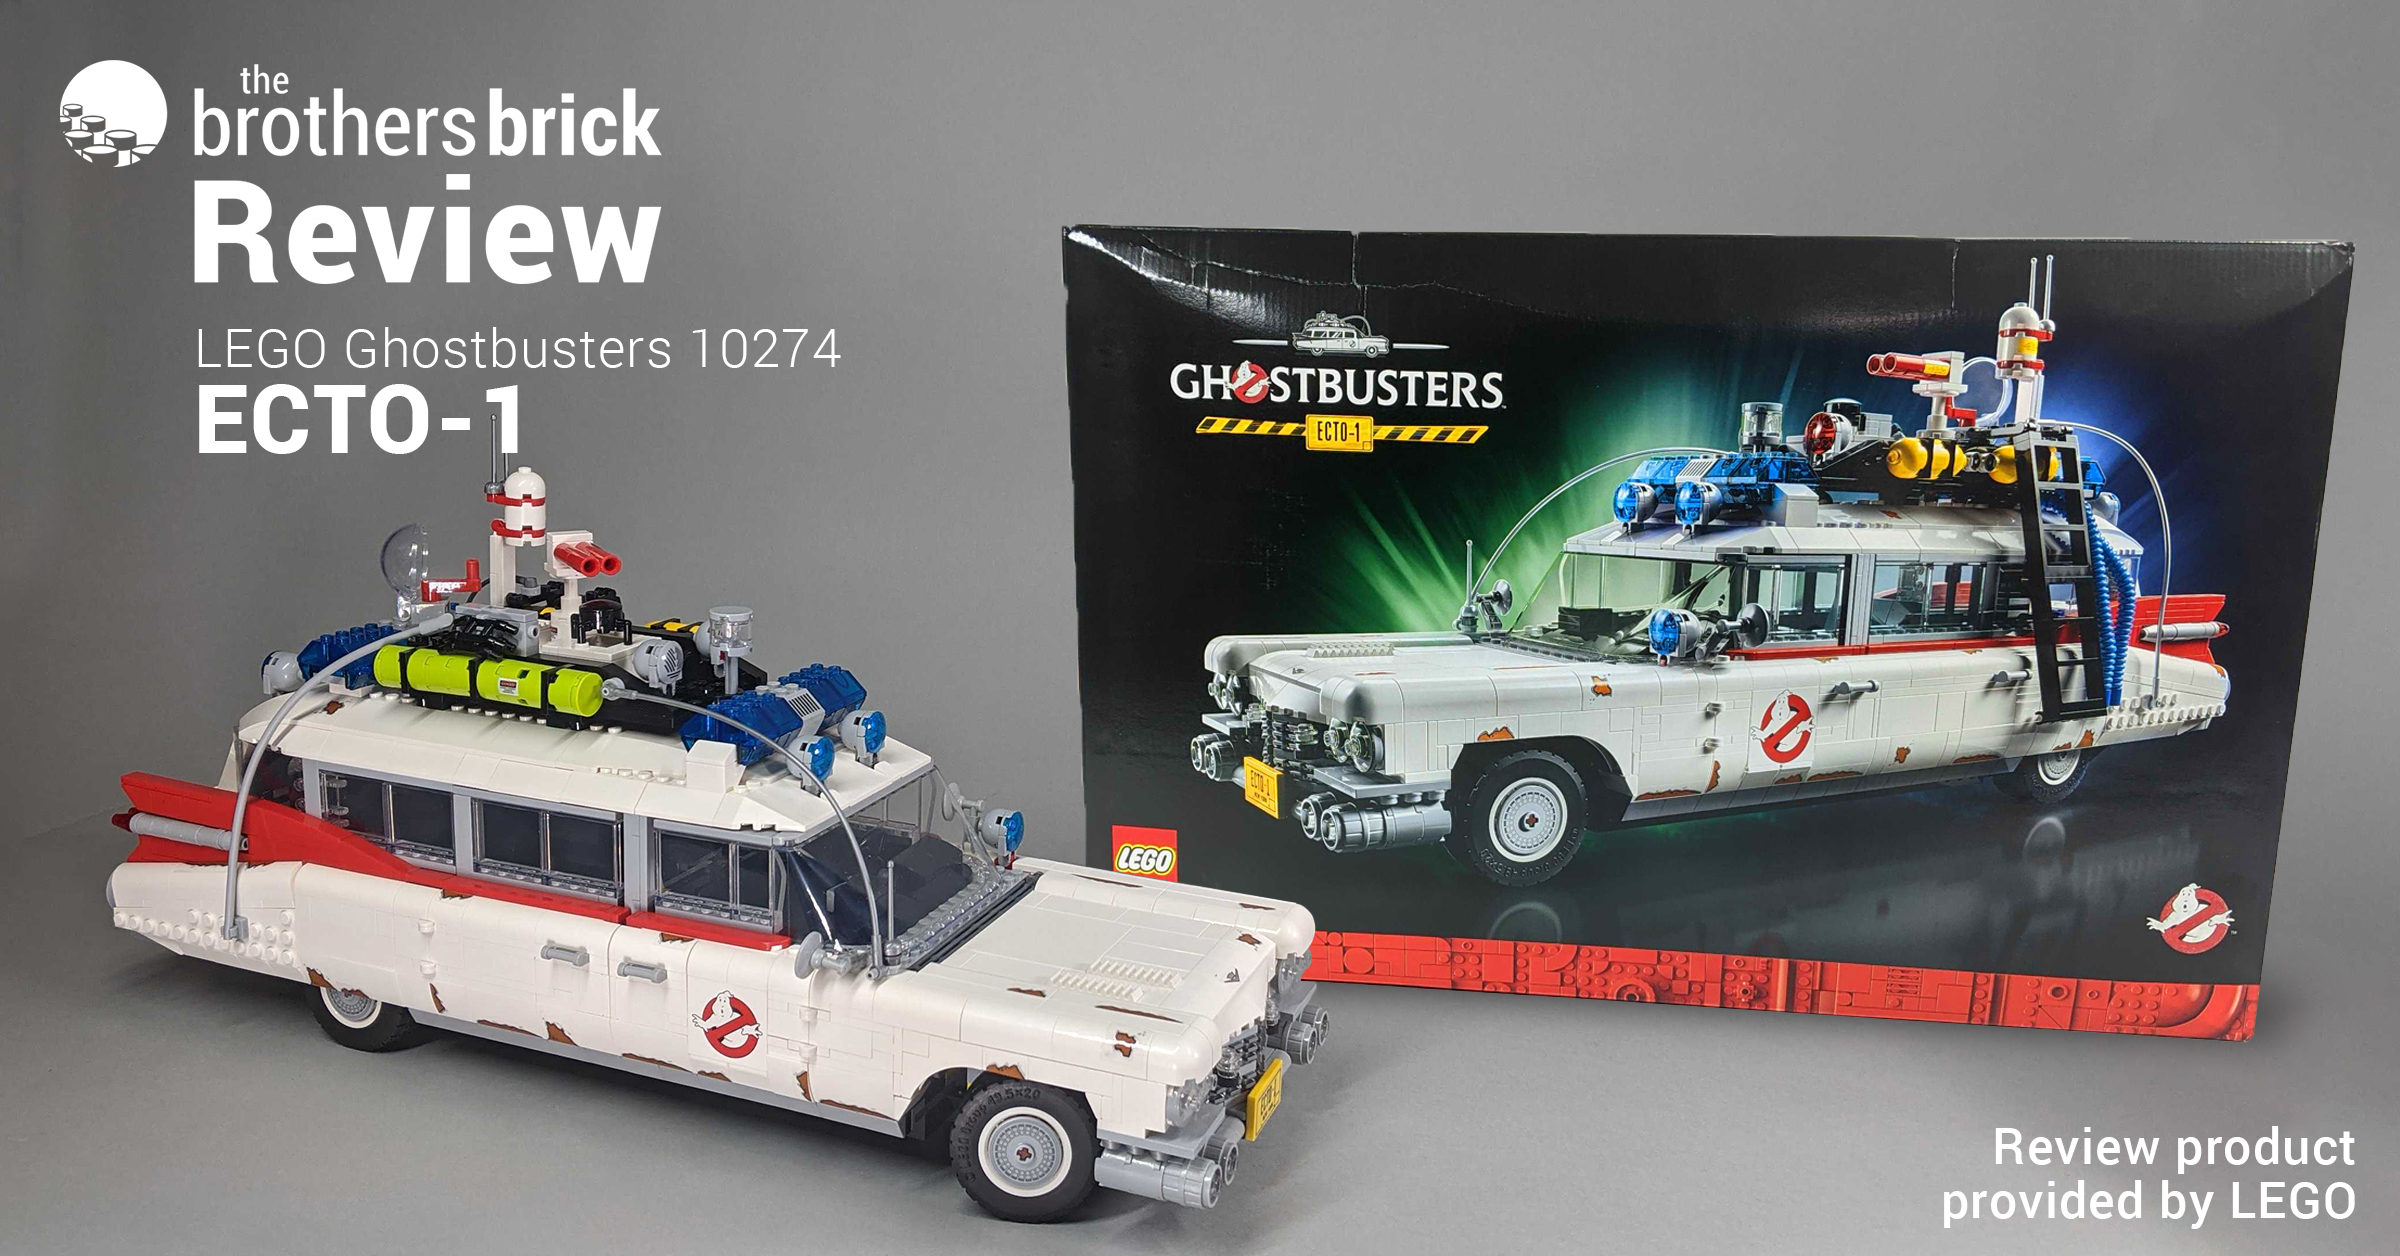 LEGO Ghostbusters 10274 ECTO-1: Everybody can relax, I found the car. [Review] | The Brothers Brick